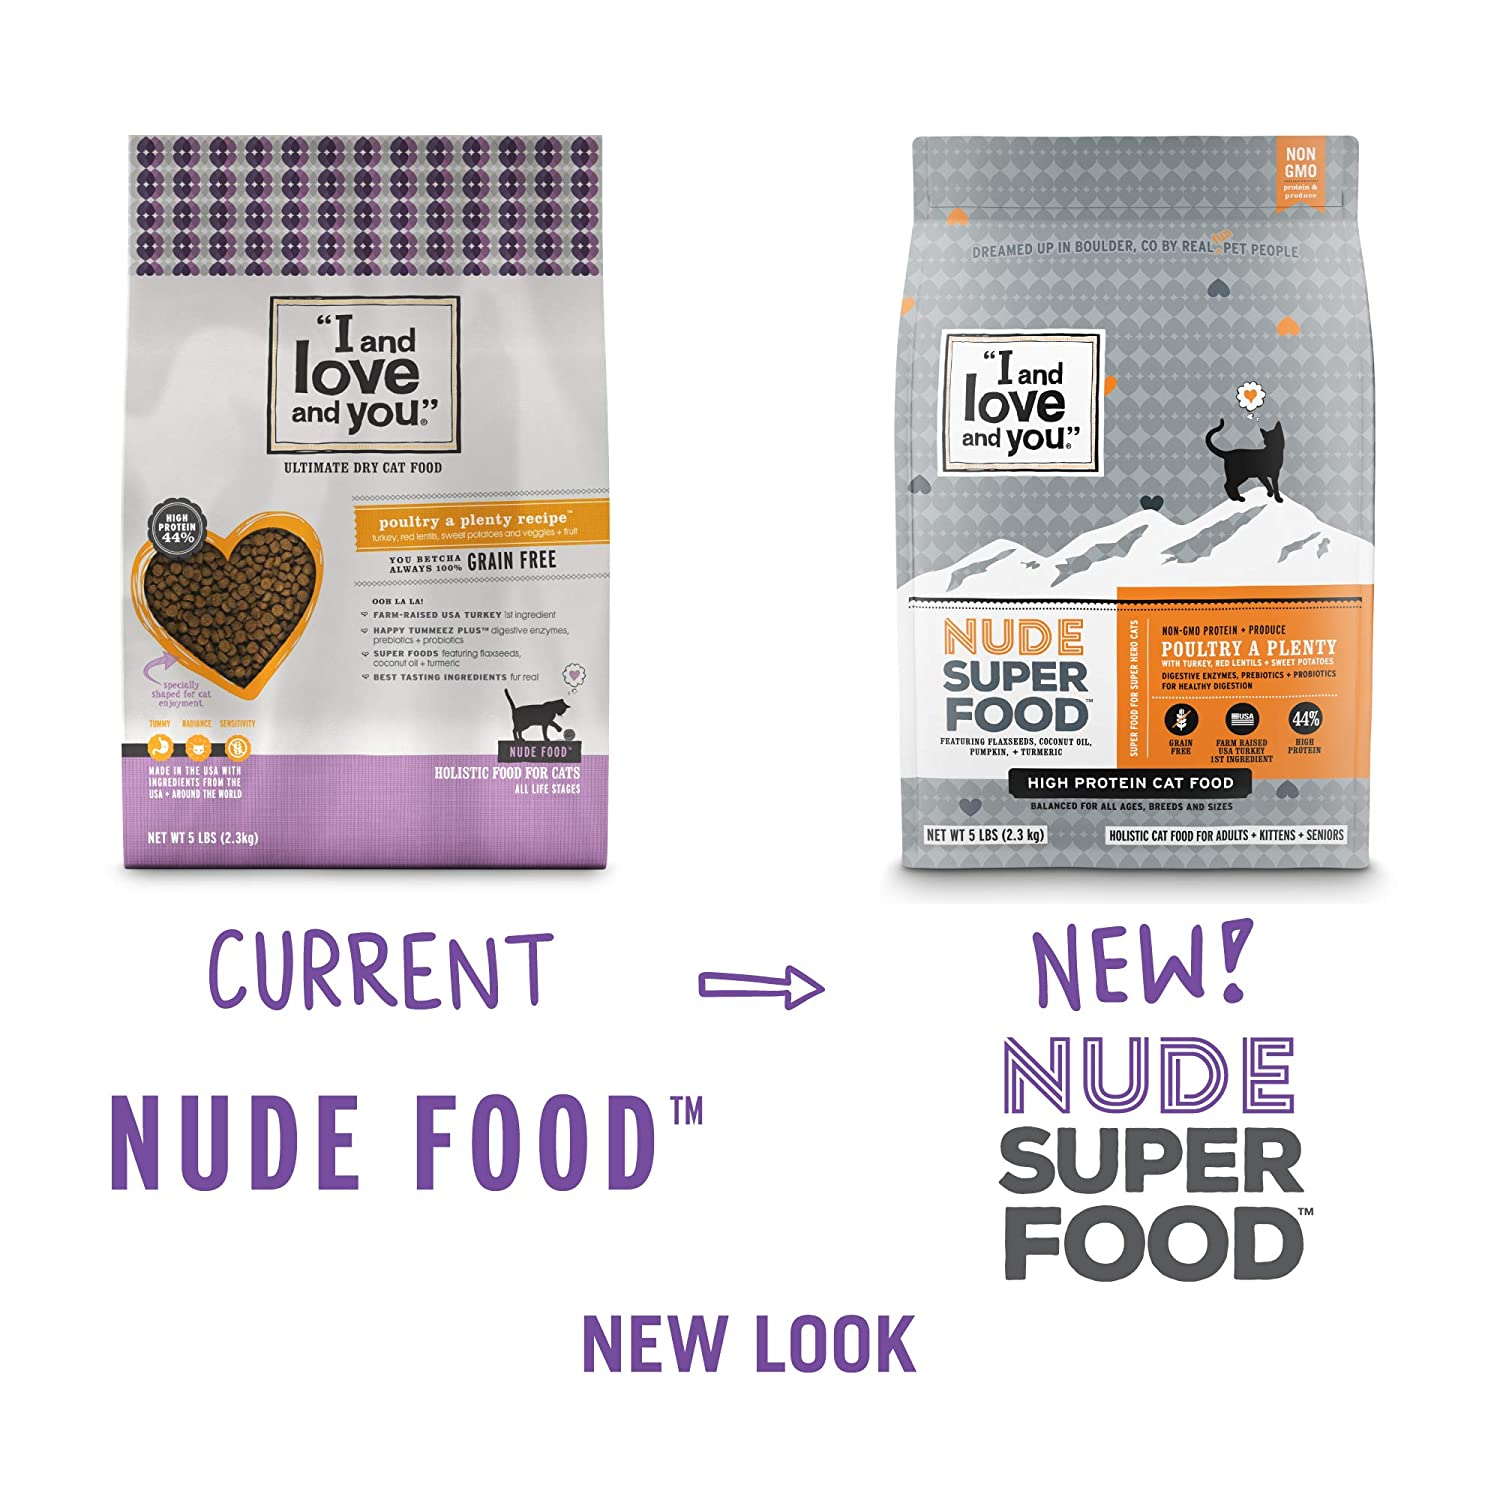 """I and love and you"" Nude Food Poultry A Plenty Grain Free"